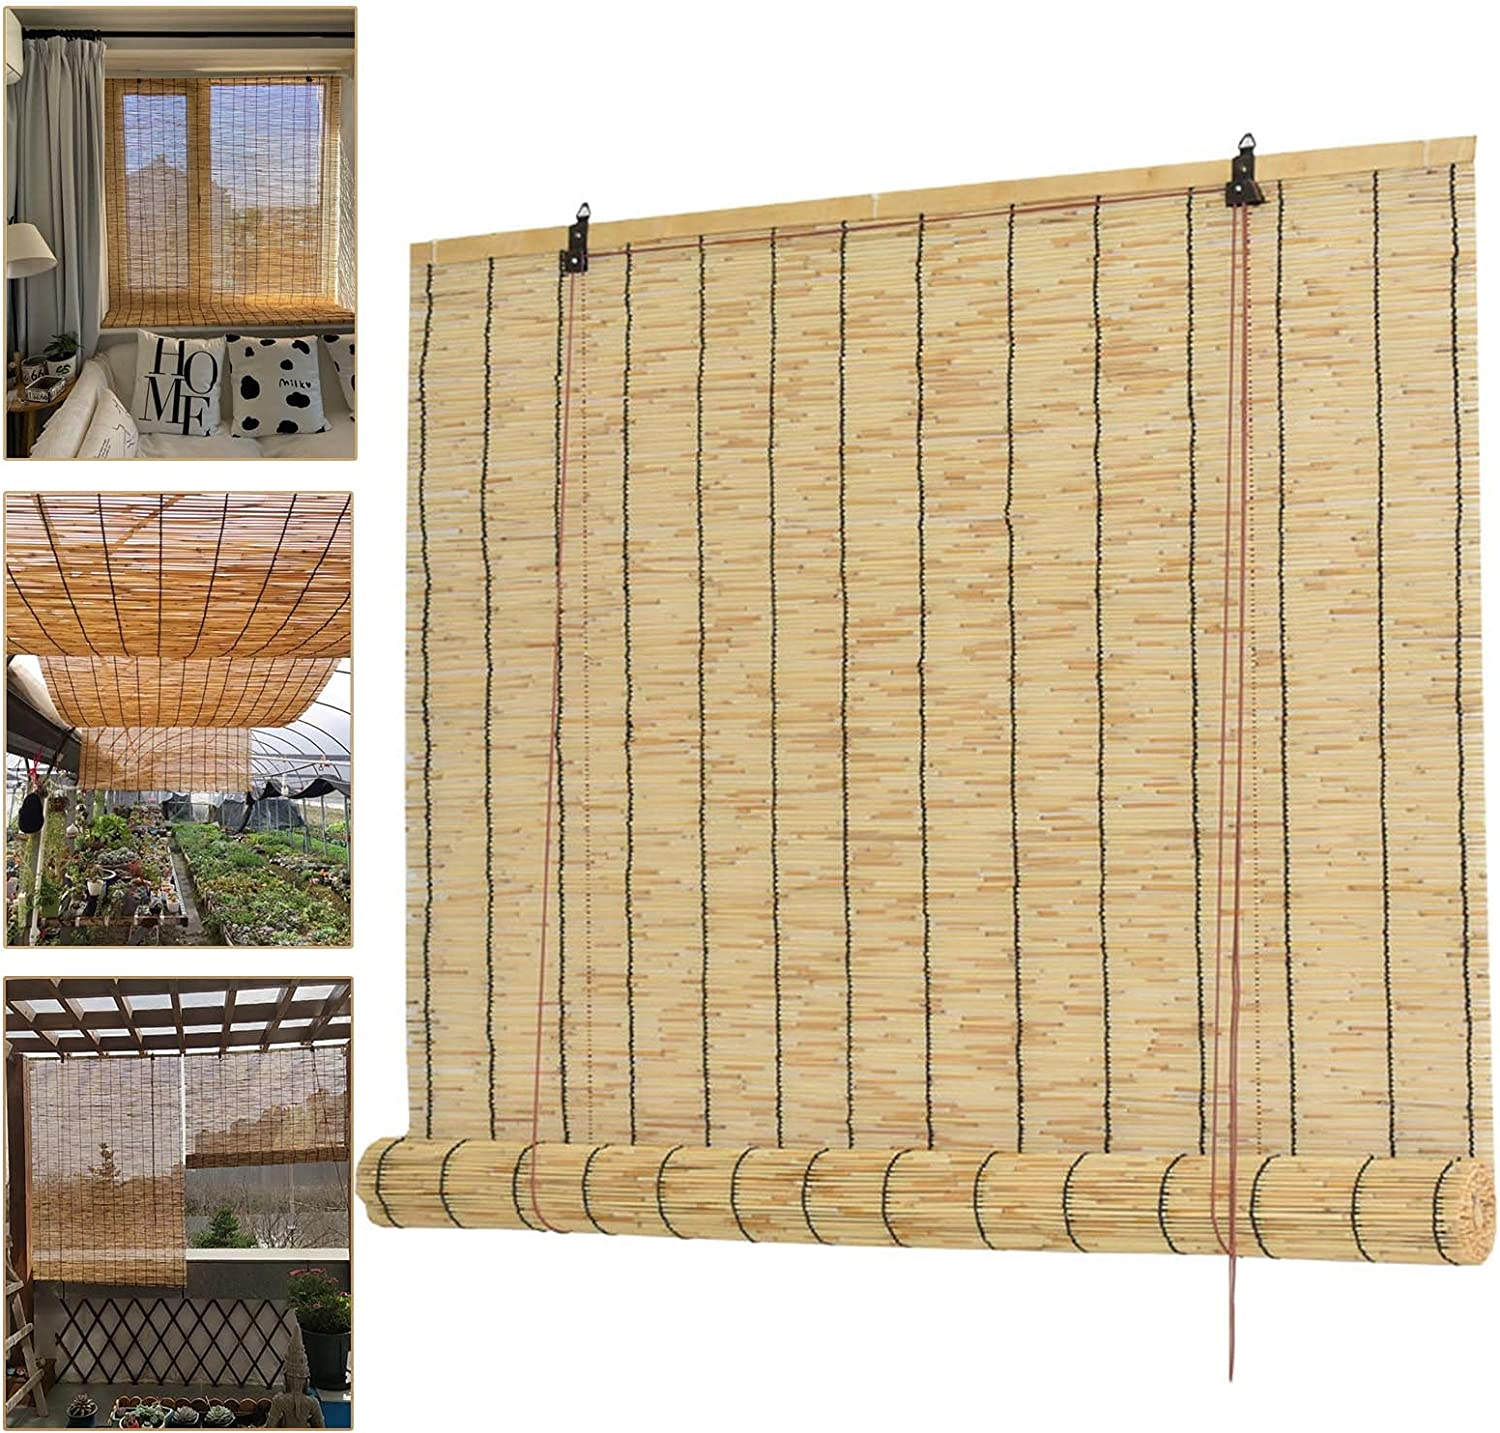 Natural Reed Curtain Ranking TOP16 Retro Straw Woven Shutters Bl Roller Bamboo List price